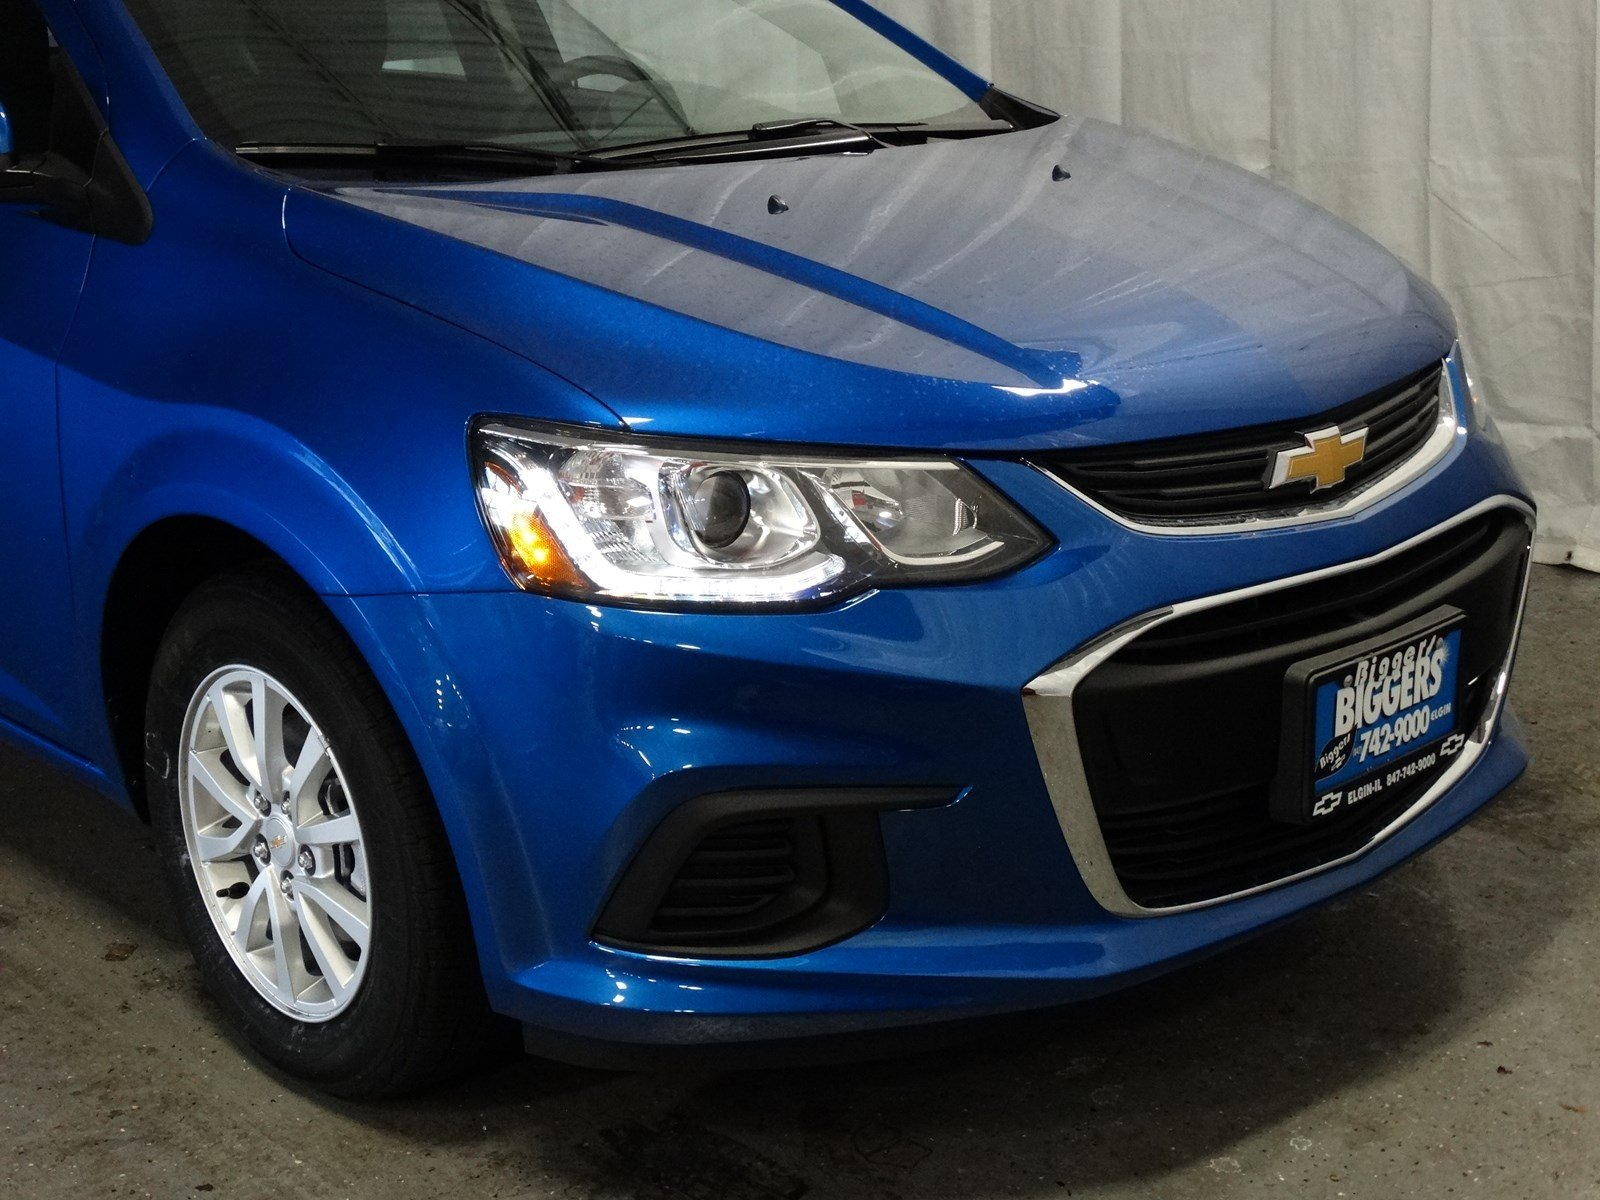 Chevrolet Sonic Repair Manual: Adhesive Installation of Liftgate Windows